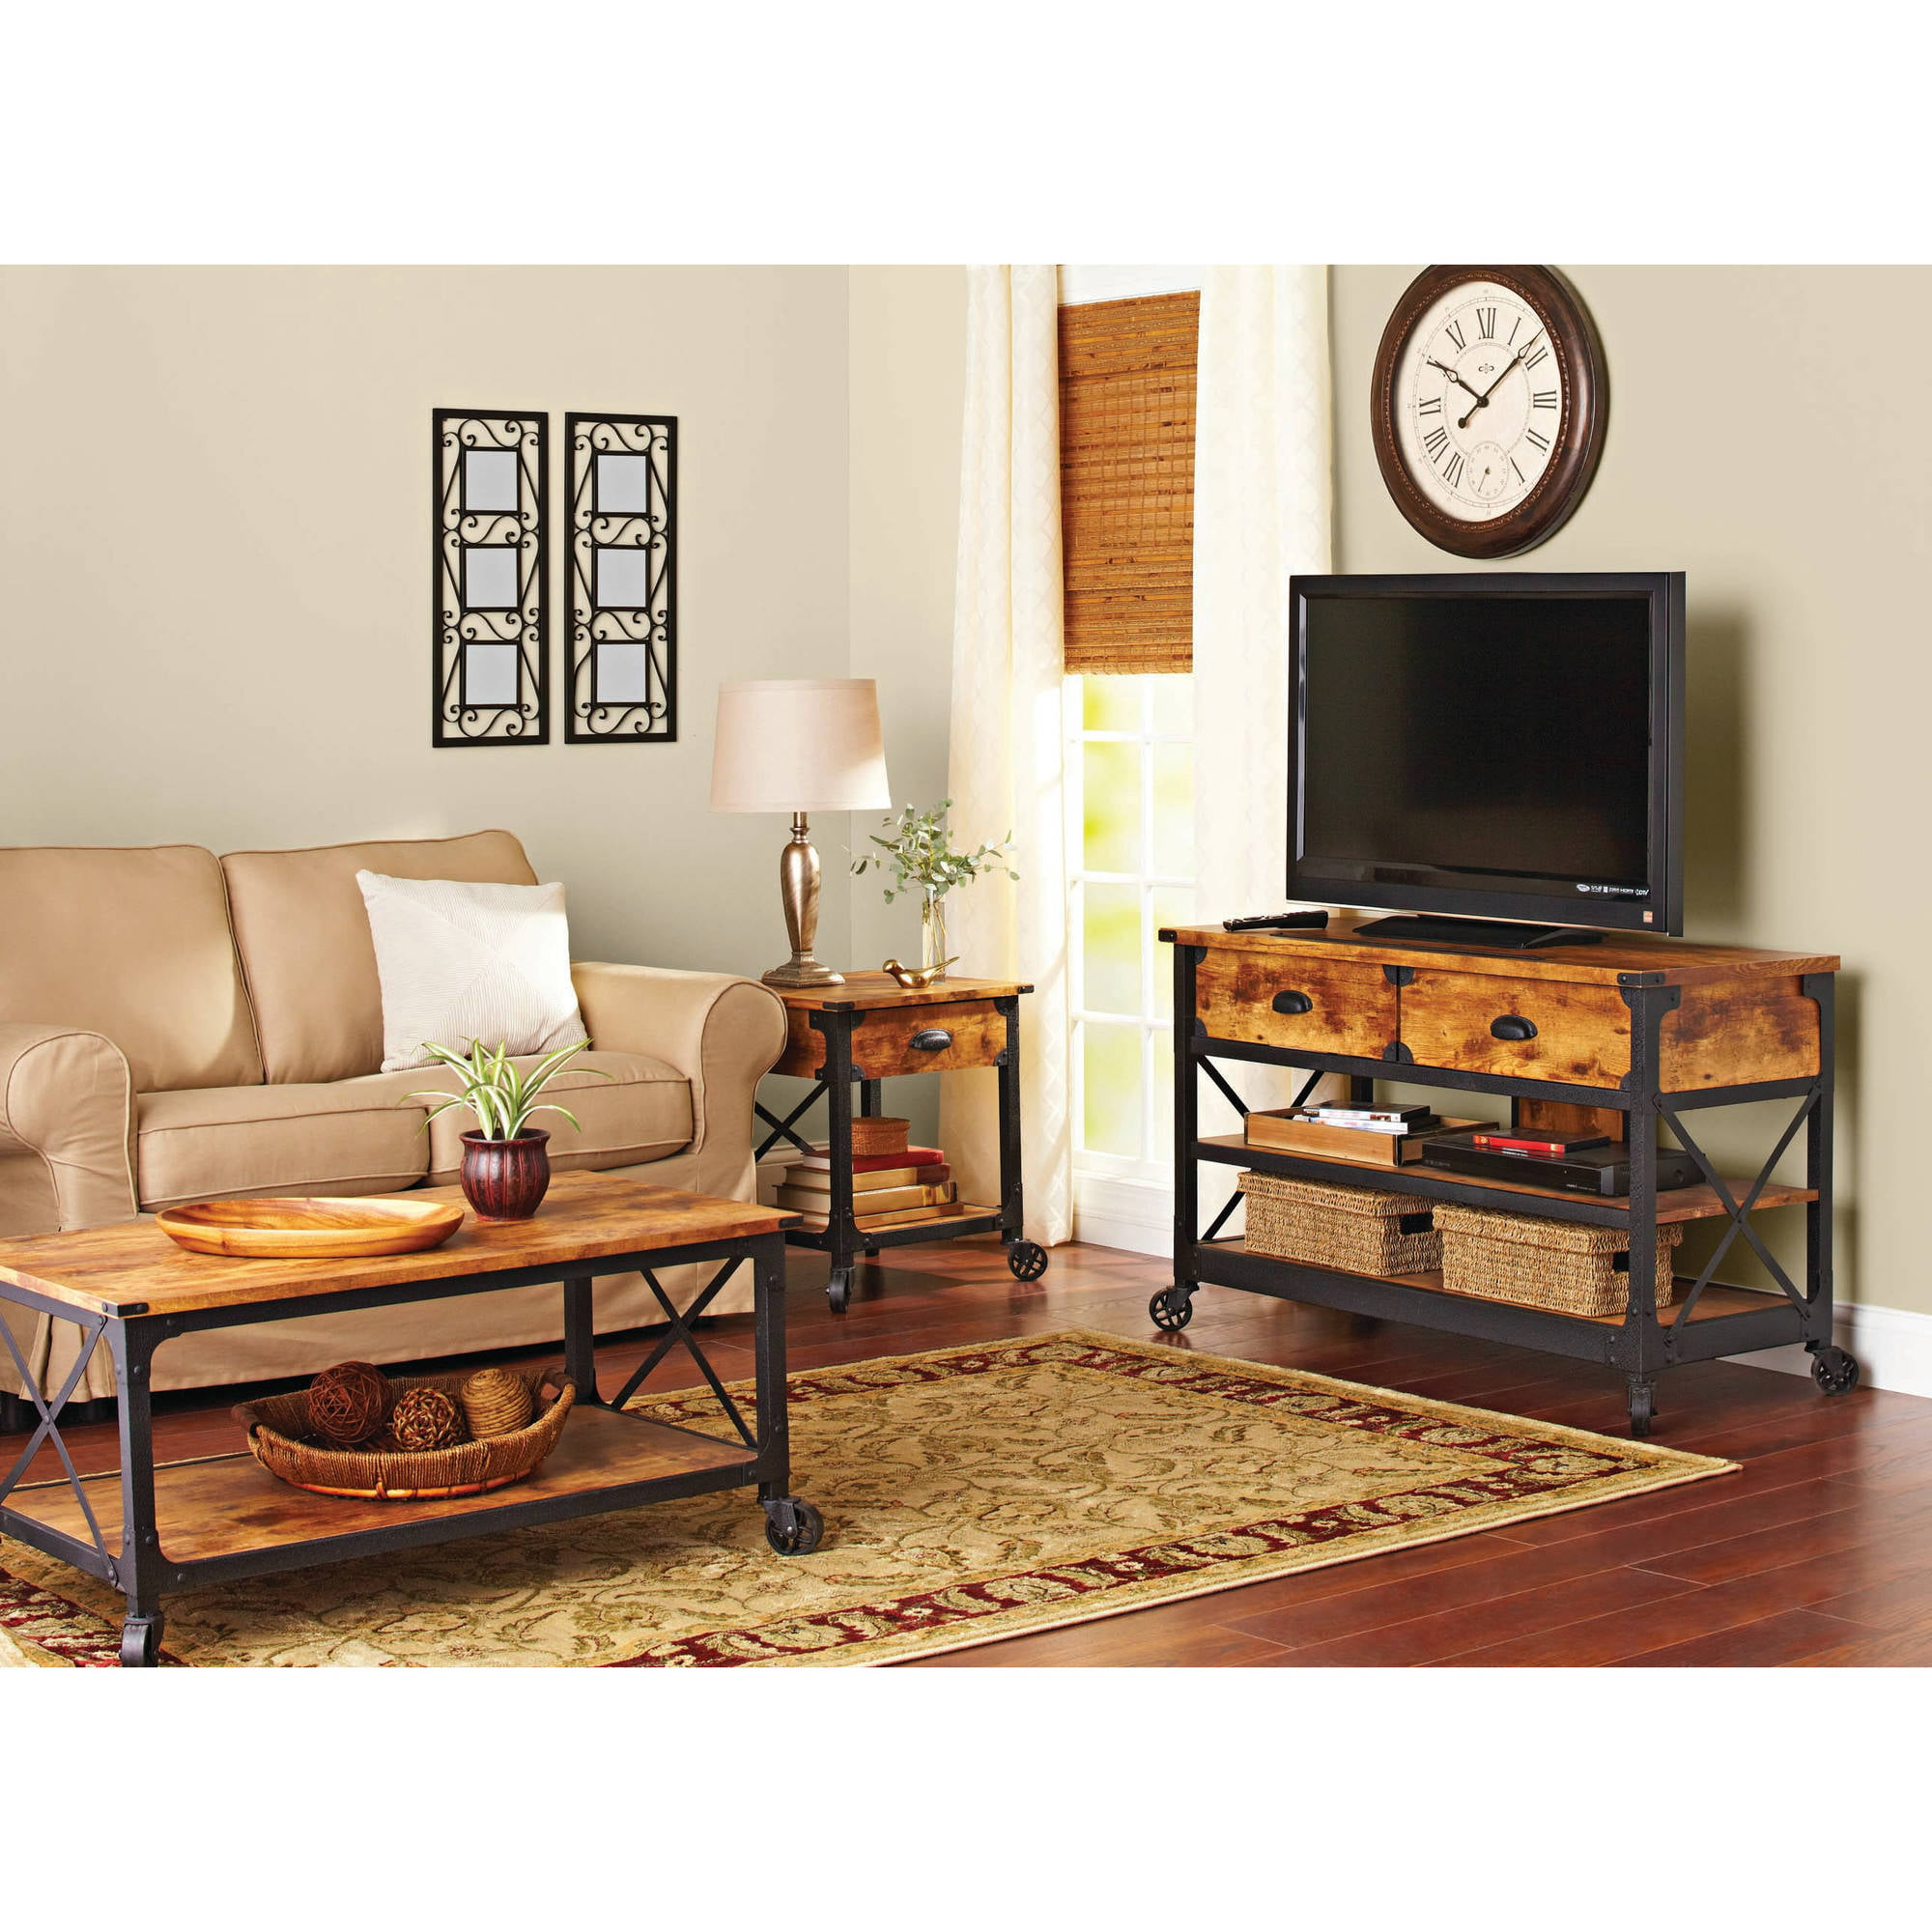 . Better Homes and Gardens Rustic Country Living Room Set   Walmart com